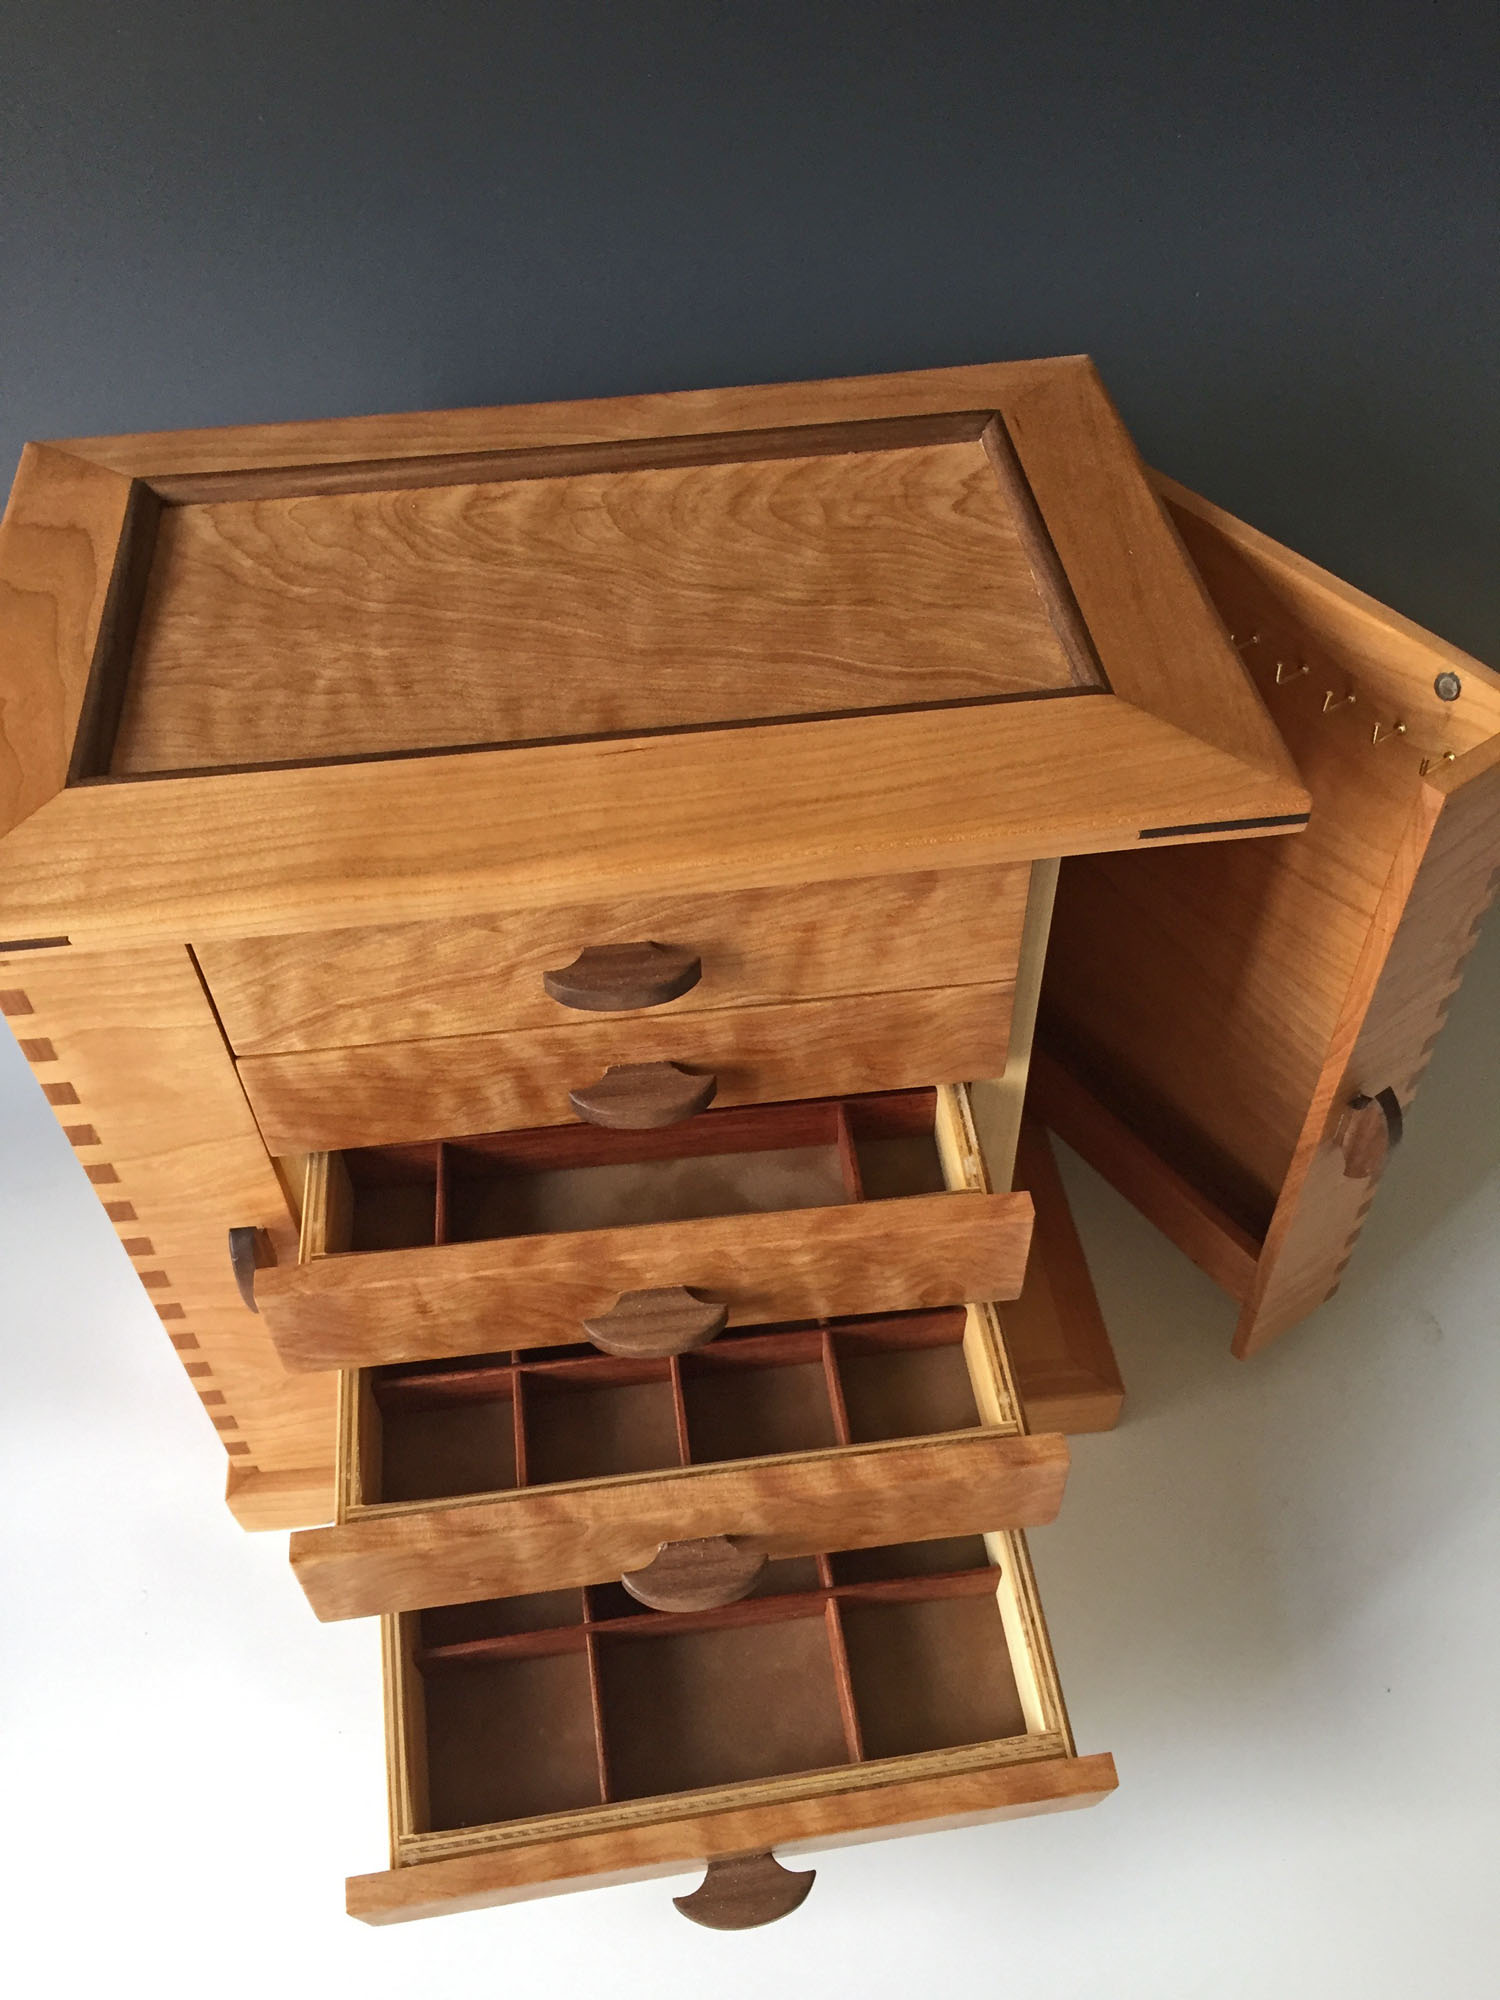 A handmade jewelry box with numerous drawers open to show the extensive storage options, plus a side door to hang necklaces.